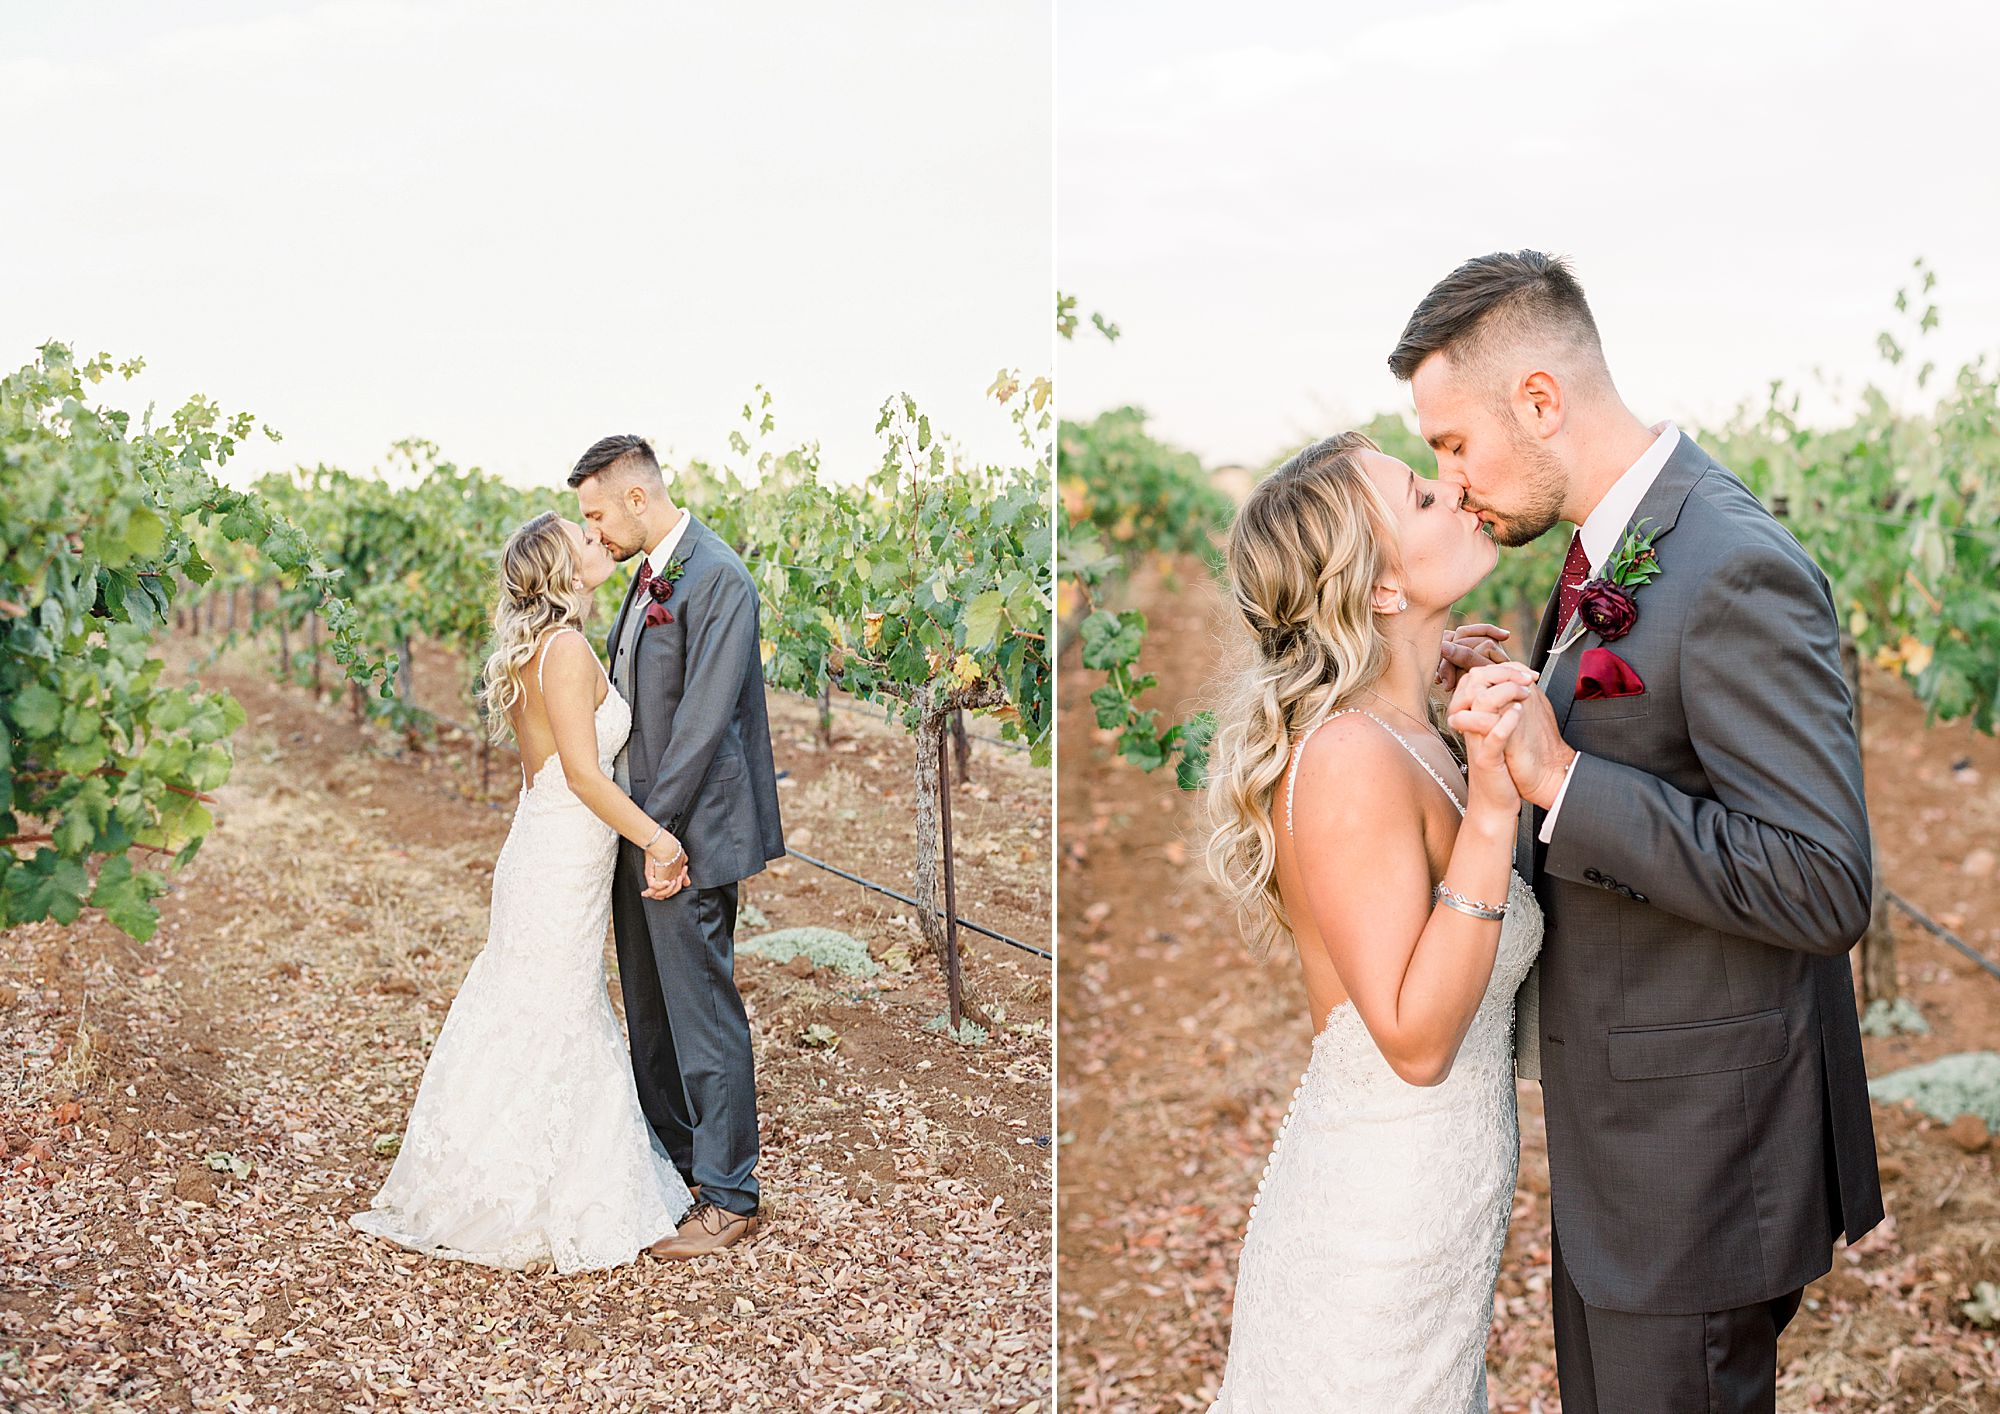 Avio Winery Wedding - Nataly and Eli - Winery Wedding - Amador Wedding Photographer - Suters Creek Wedding Photography_0062.jpg